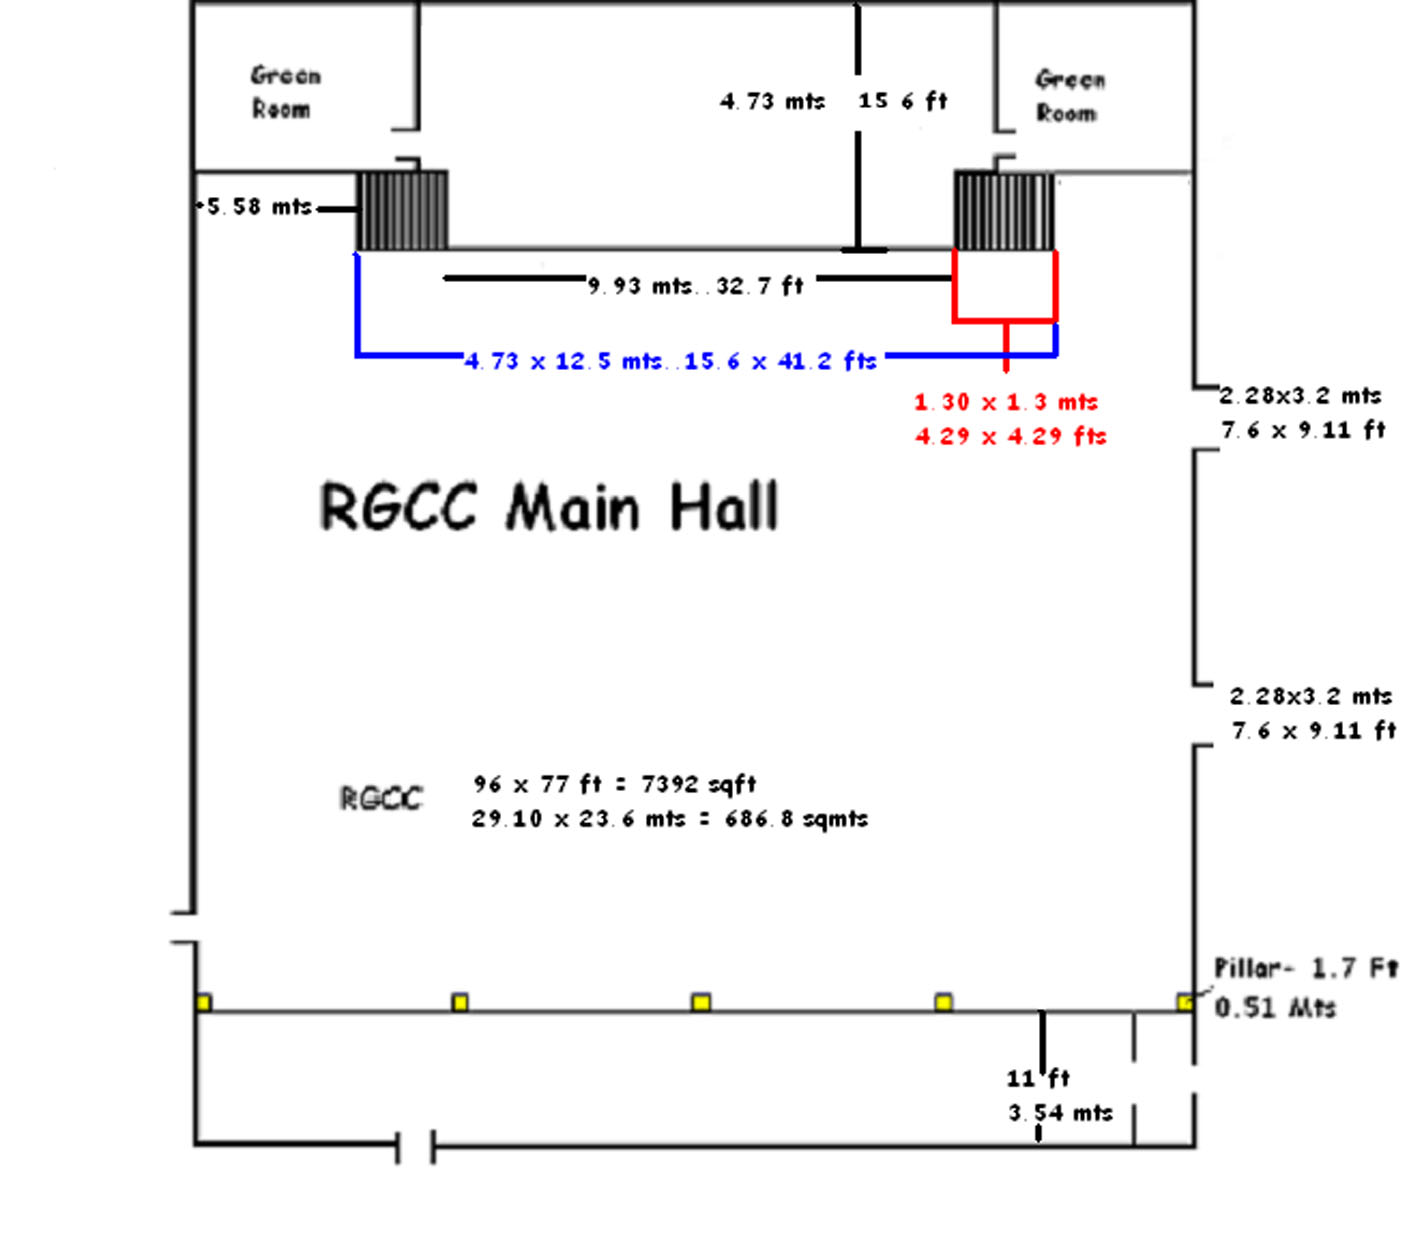 The Leela Raviz facilities: RGCC Main Hall Dimensions